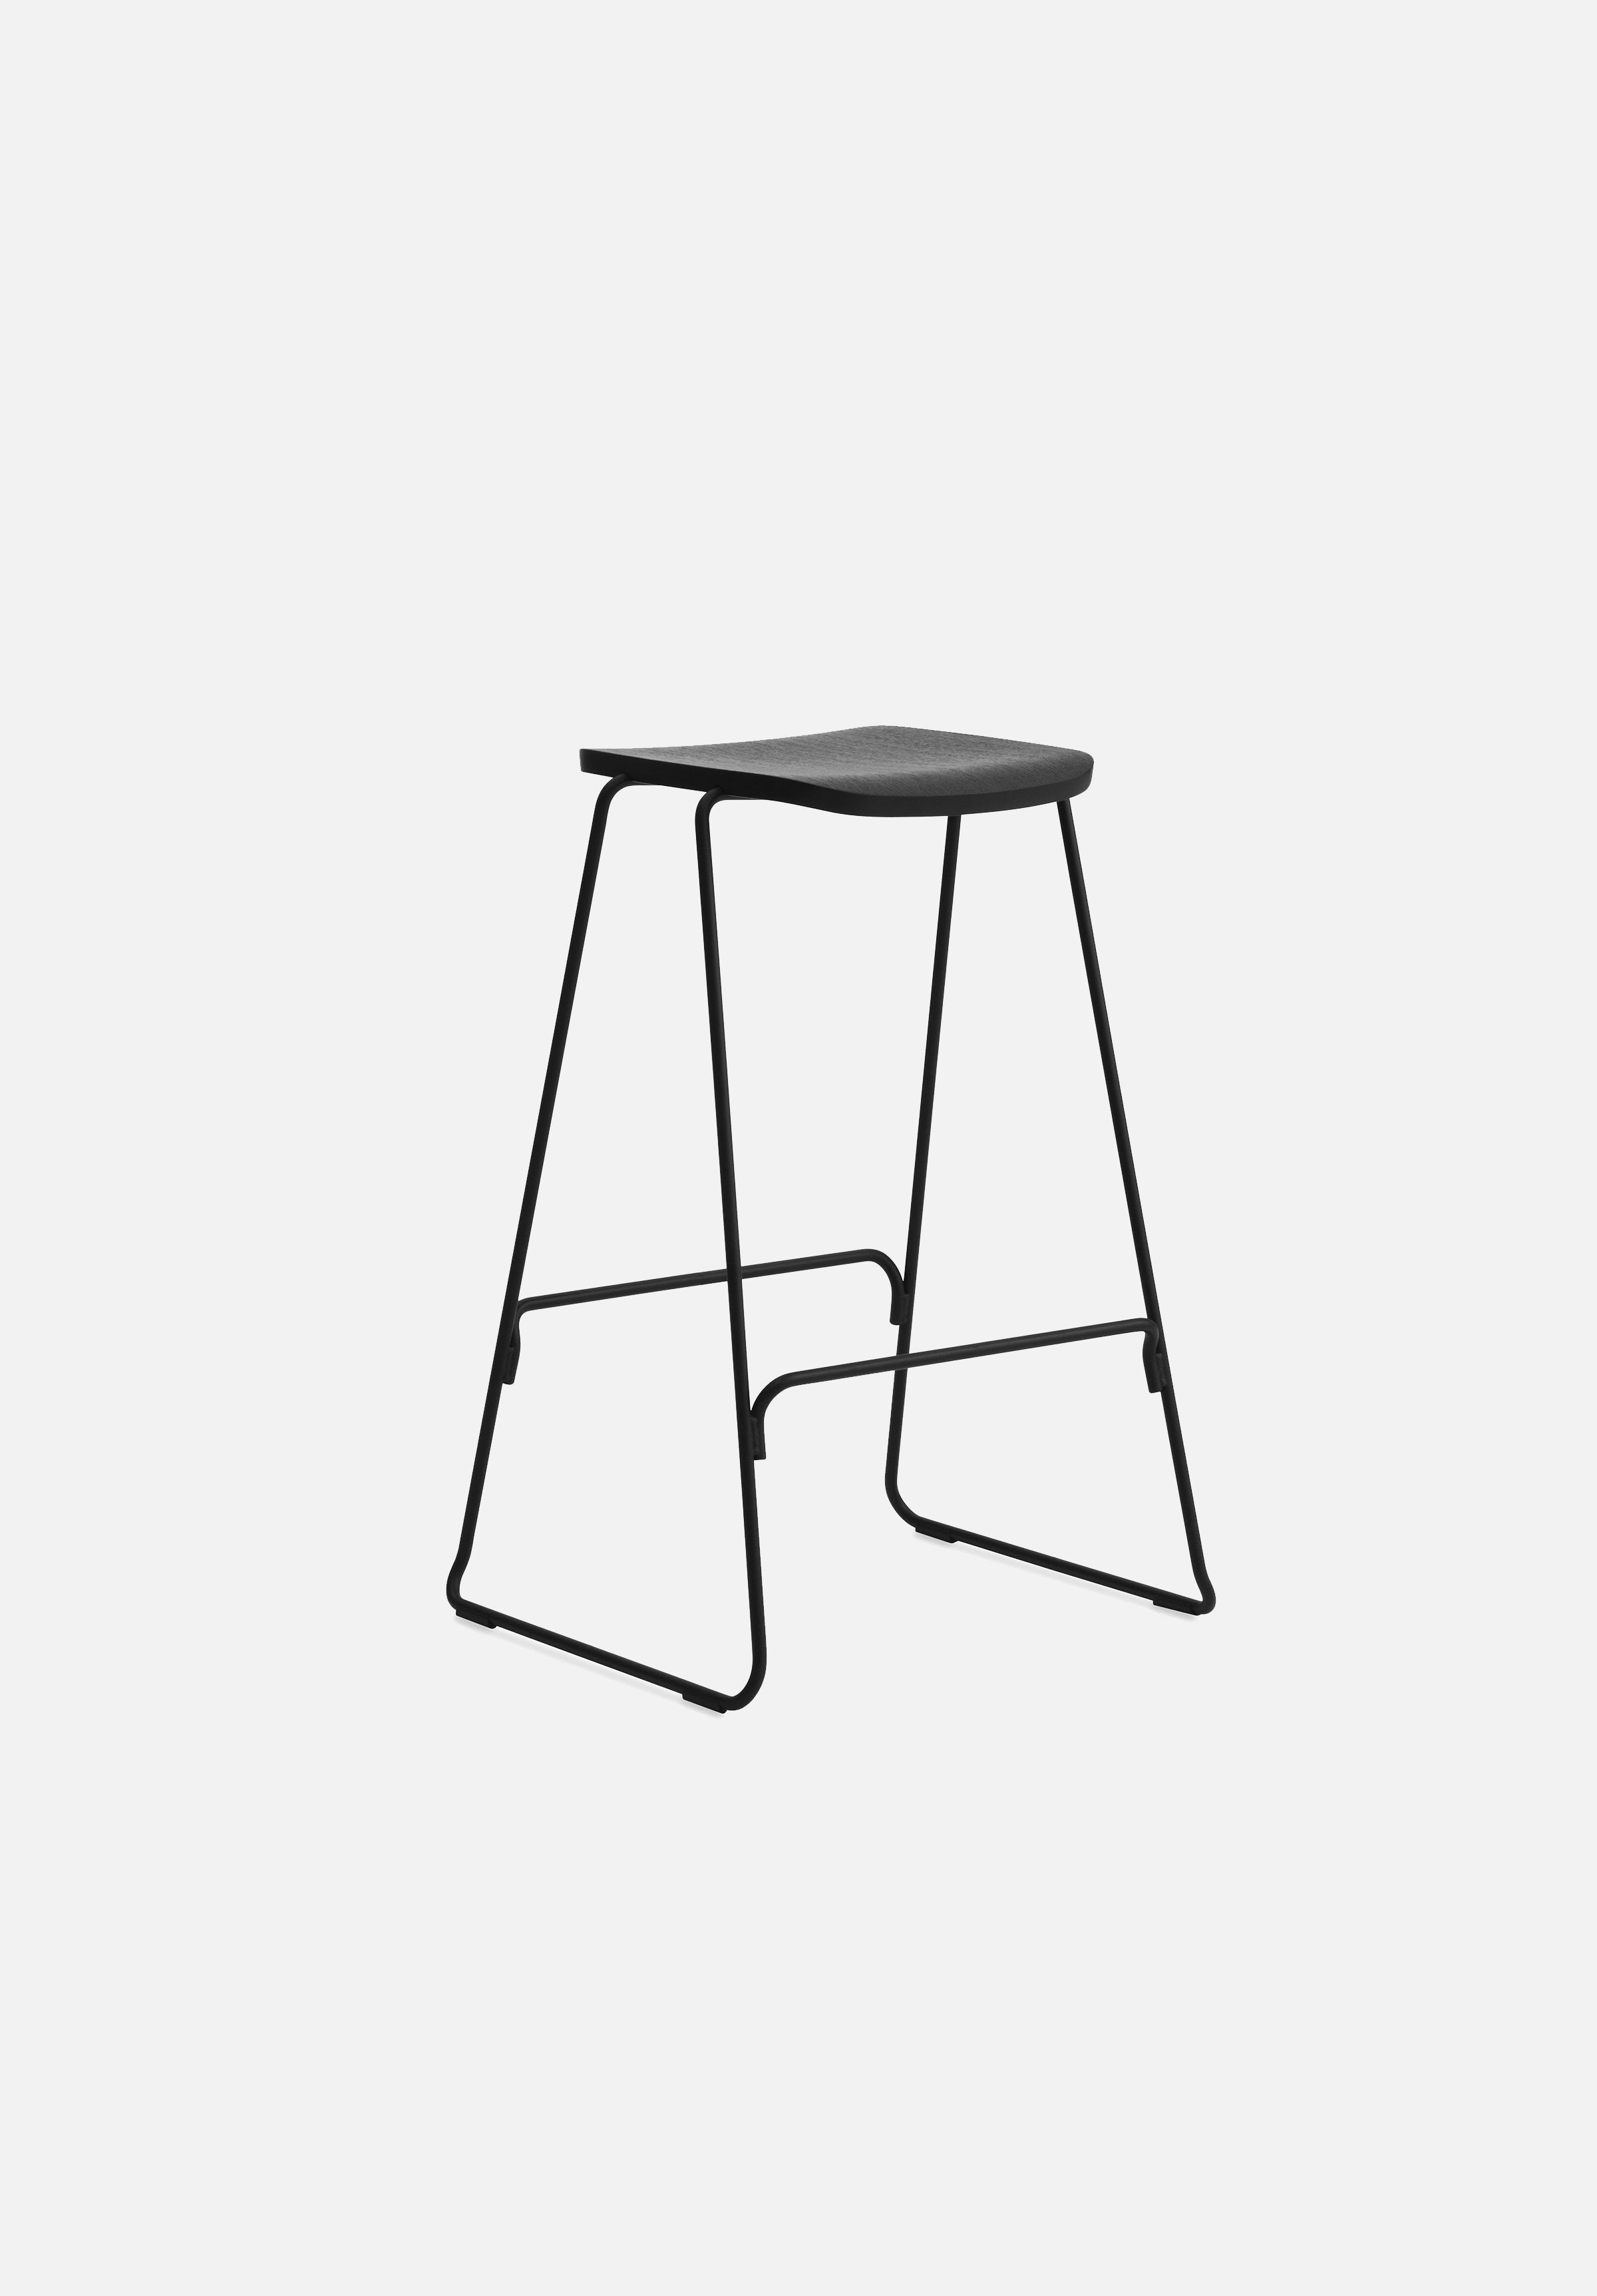 Just Stool-Iskos-Berlin-Normann Copenhagen-Black-75cm-Without-Average